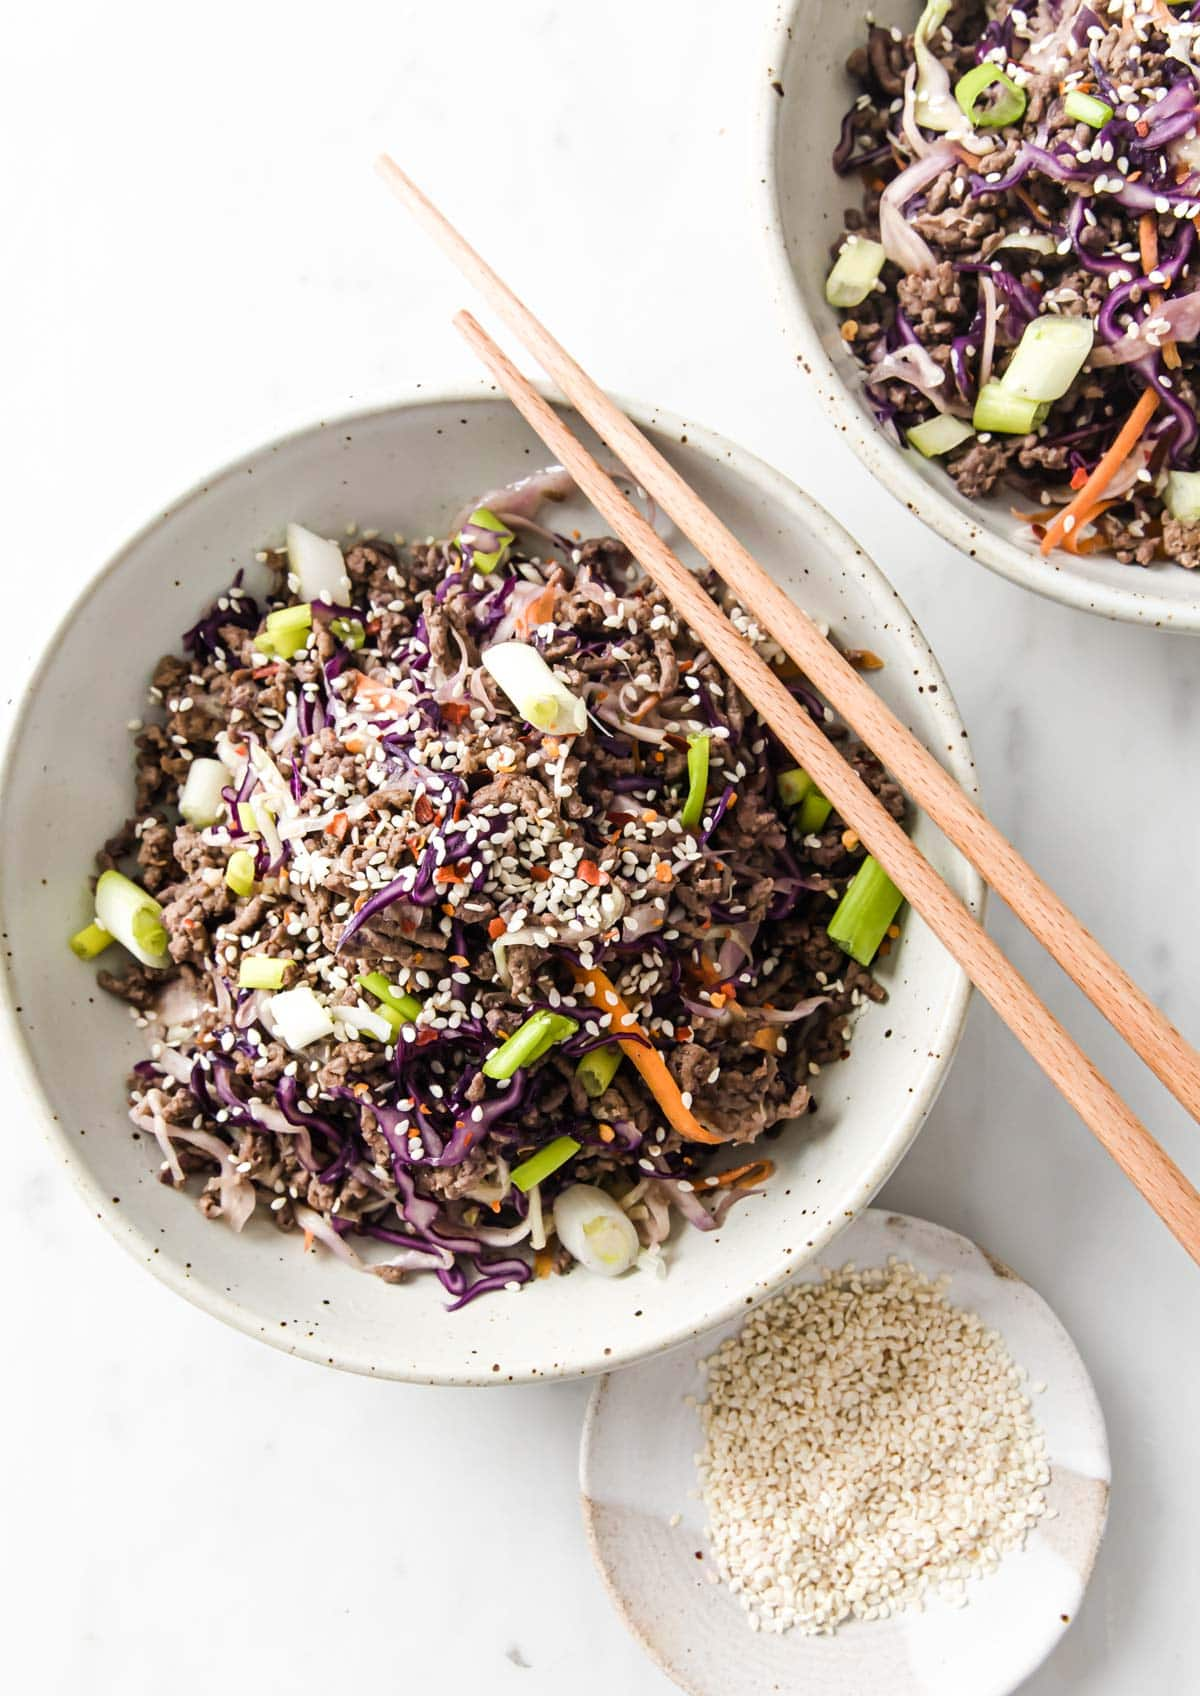 stir fried ground beef and cabbage aka crack slaw with spring onions and sesame seeds on a plate with chopsticks